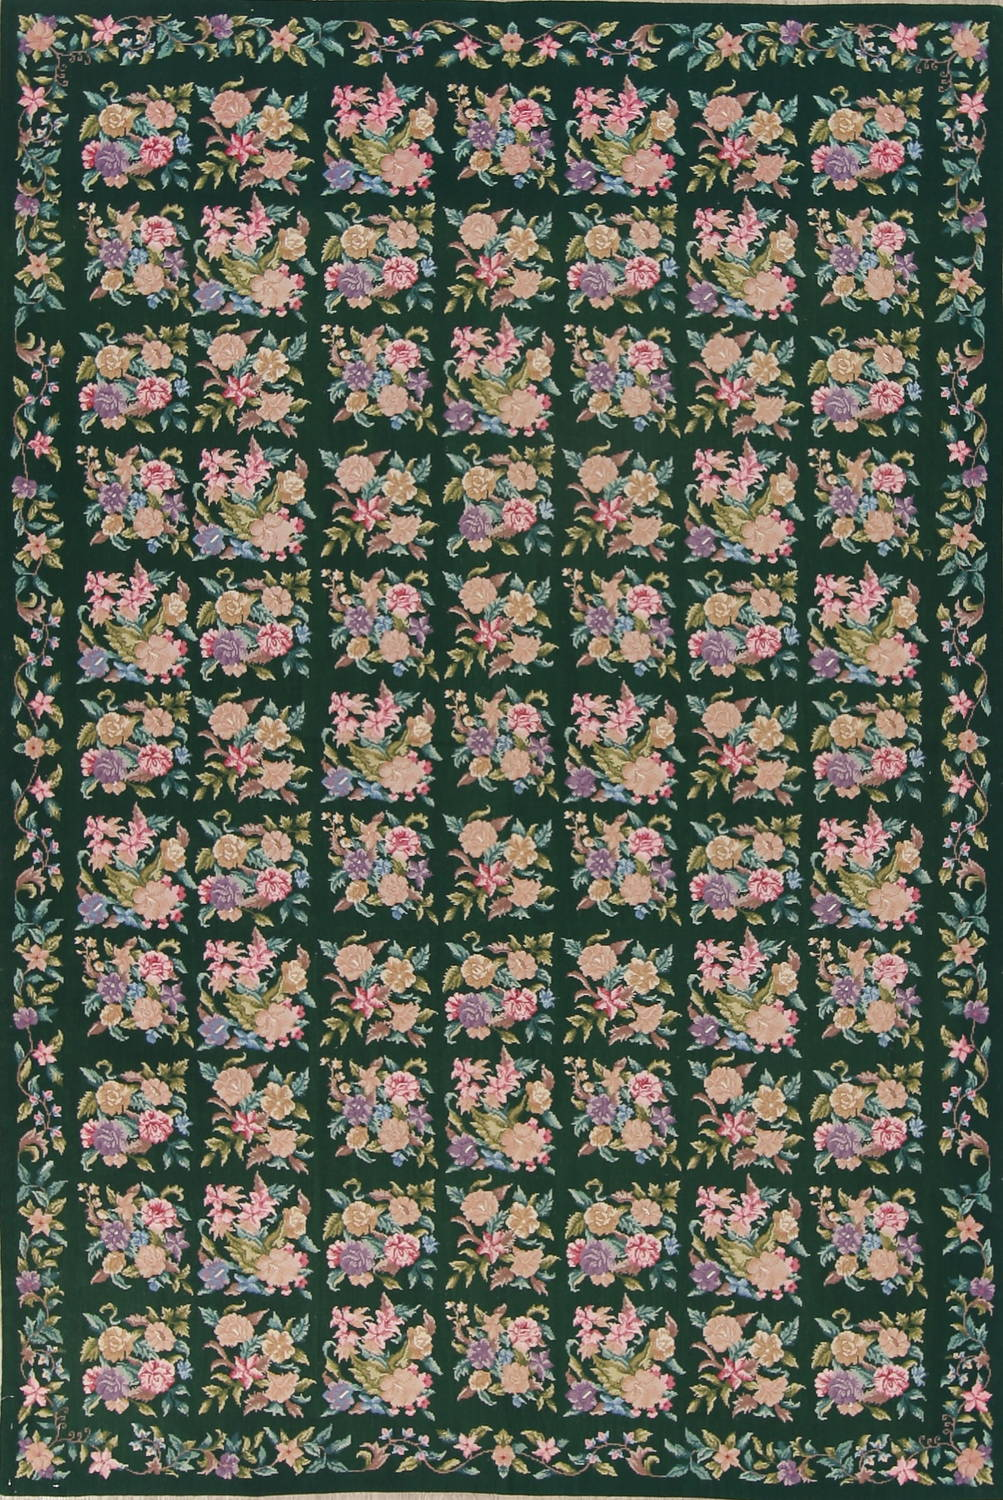 Hunter Green Floral Aubusson Needle-point Chinese Woven Area Rug Wool 6x9 image 1